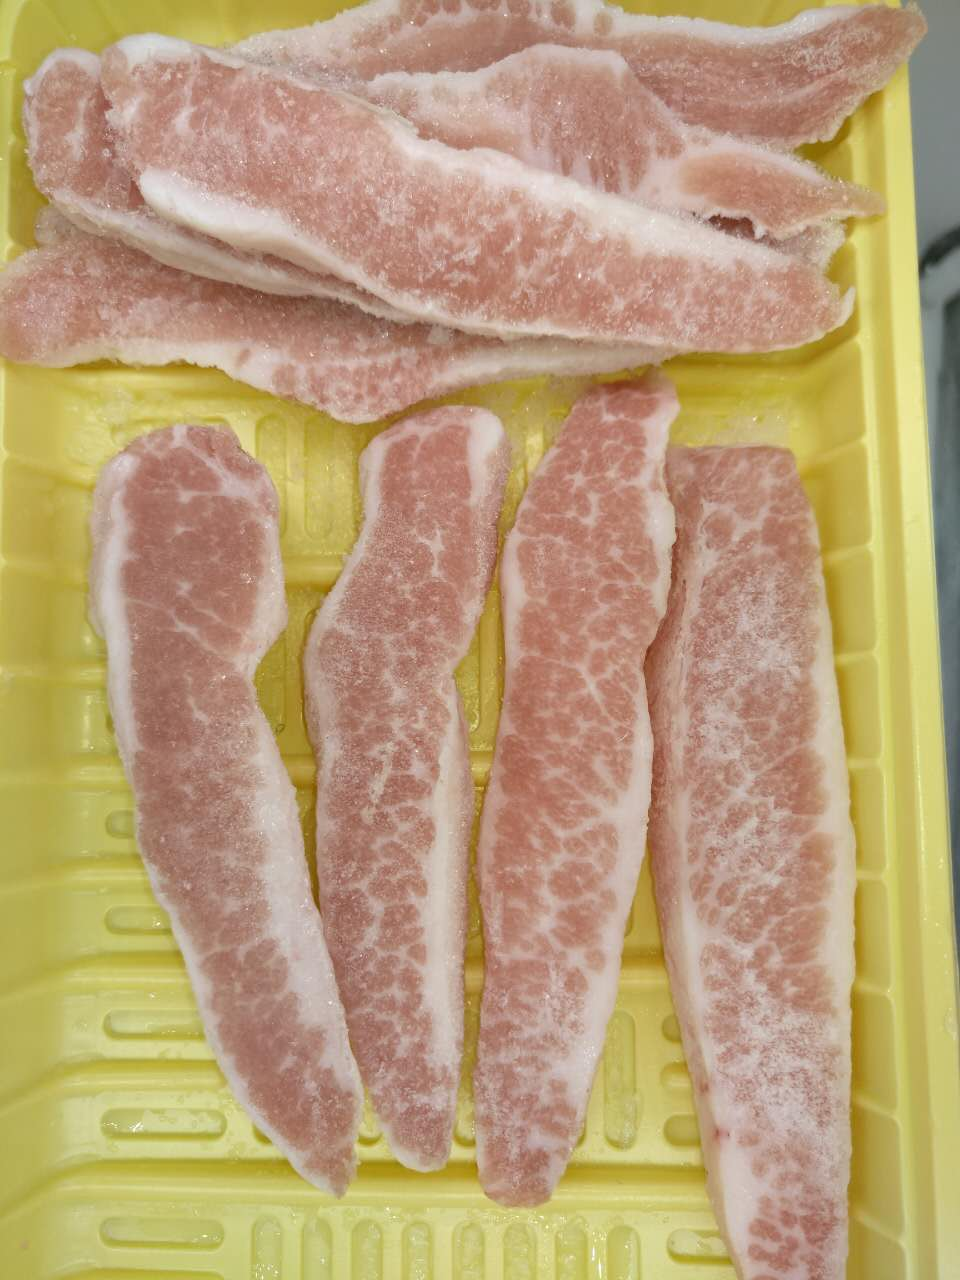 Black pig face meat, pork in gold 32 small package 500g